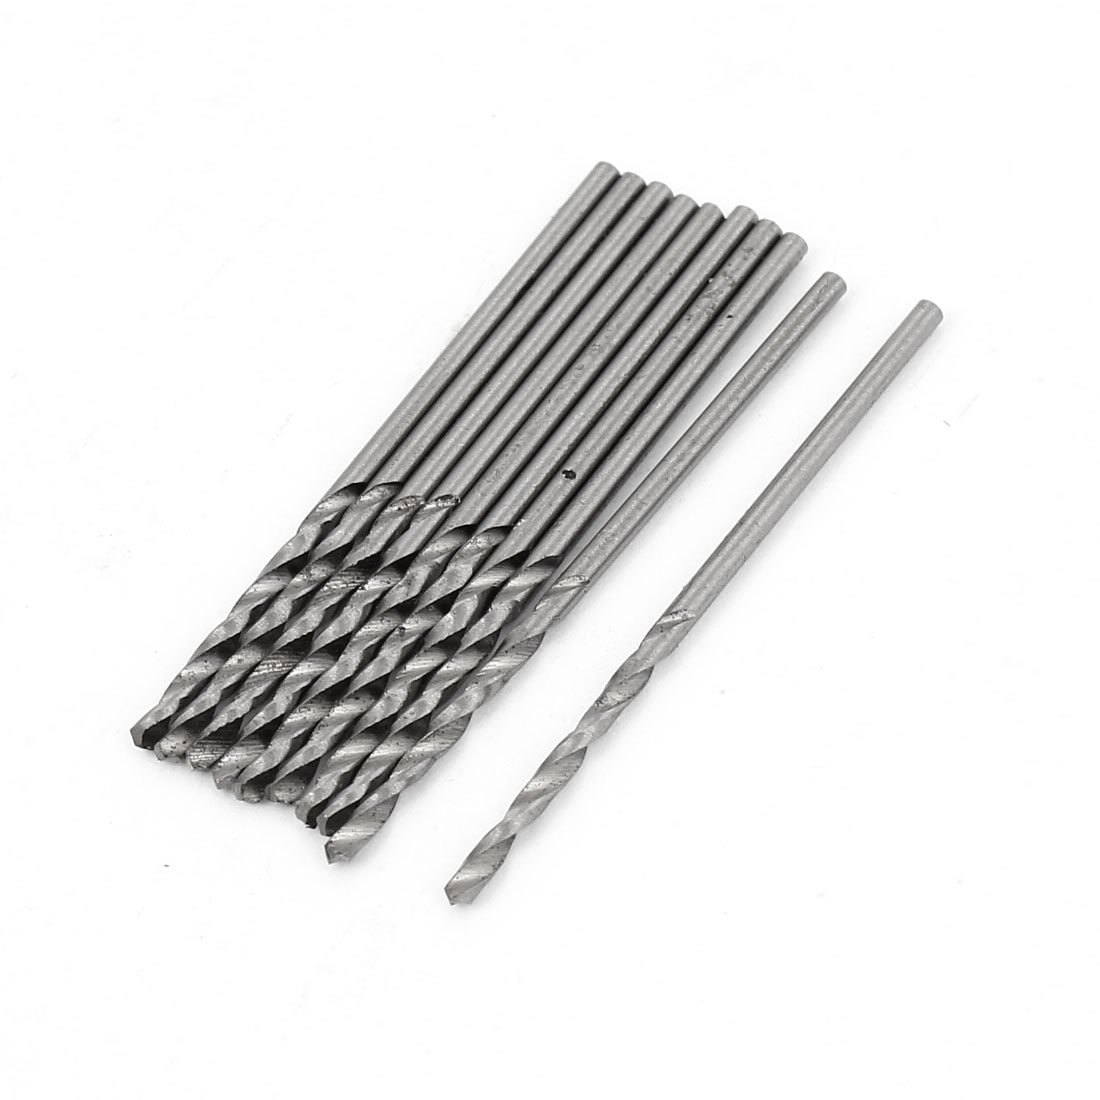 High Speed Steel 1.4mm Dia Split Point 39mm Long Twist Drill Bits 10 Pcs